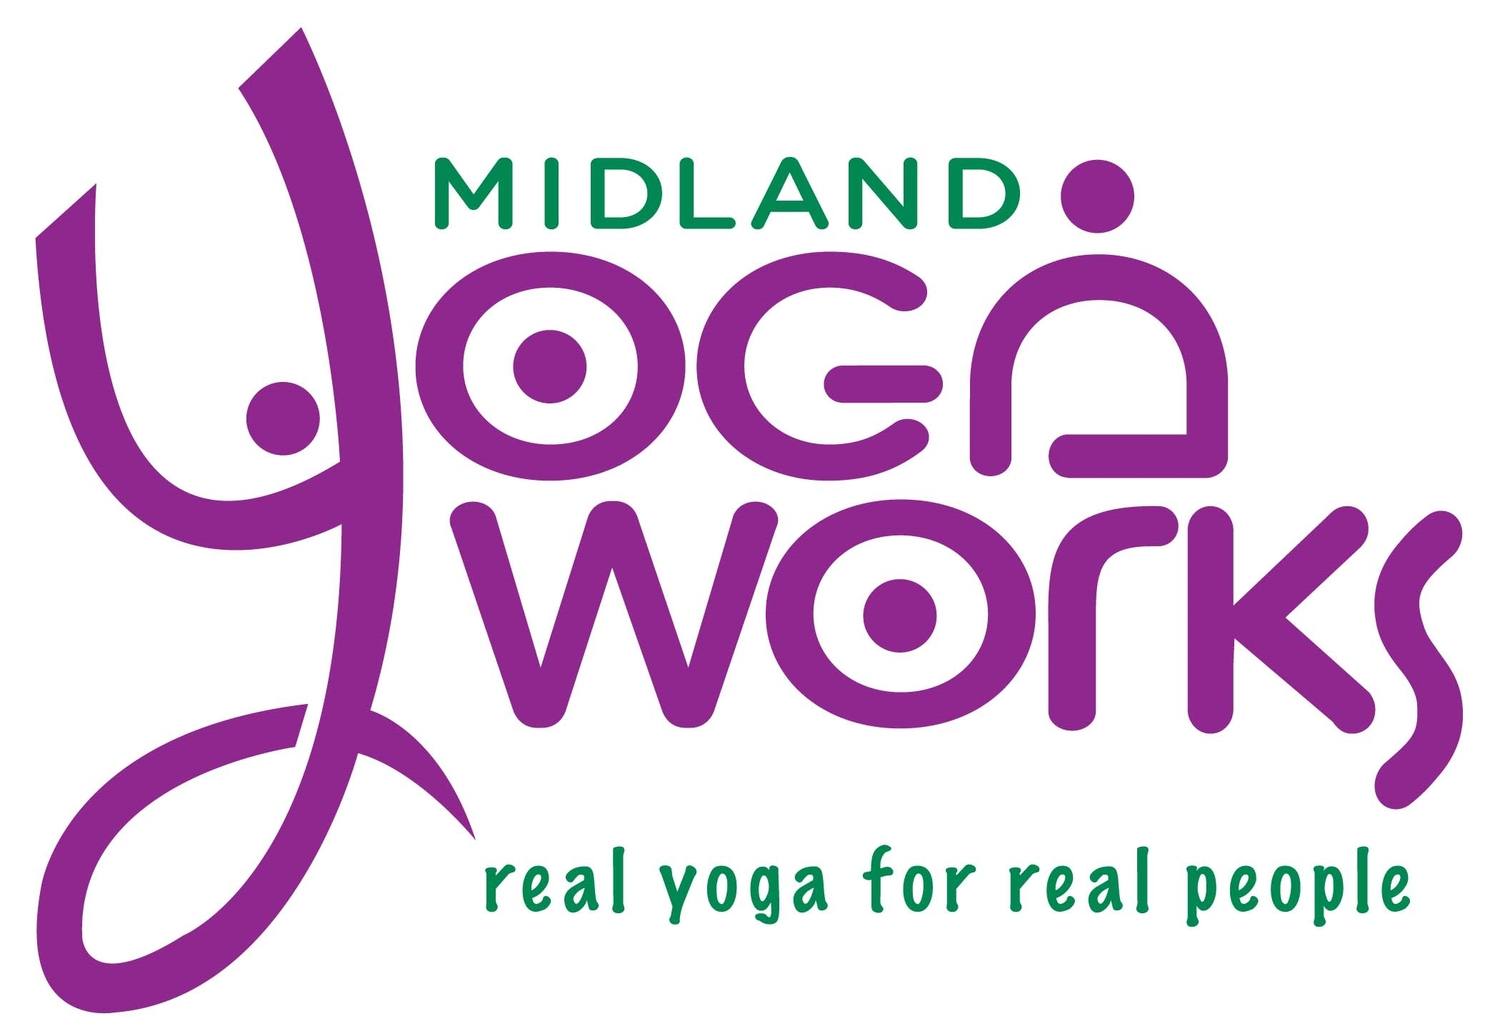 Midland Yoga Works